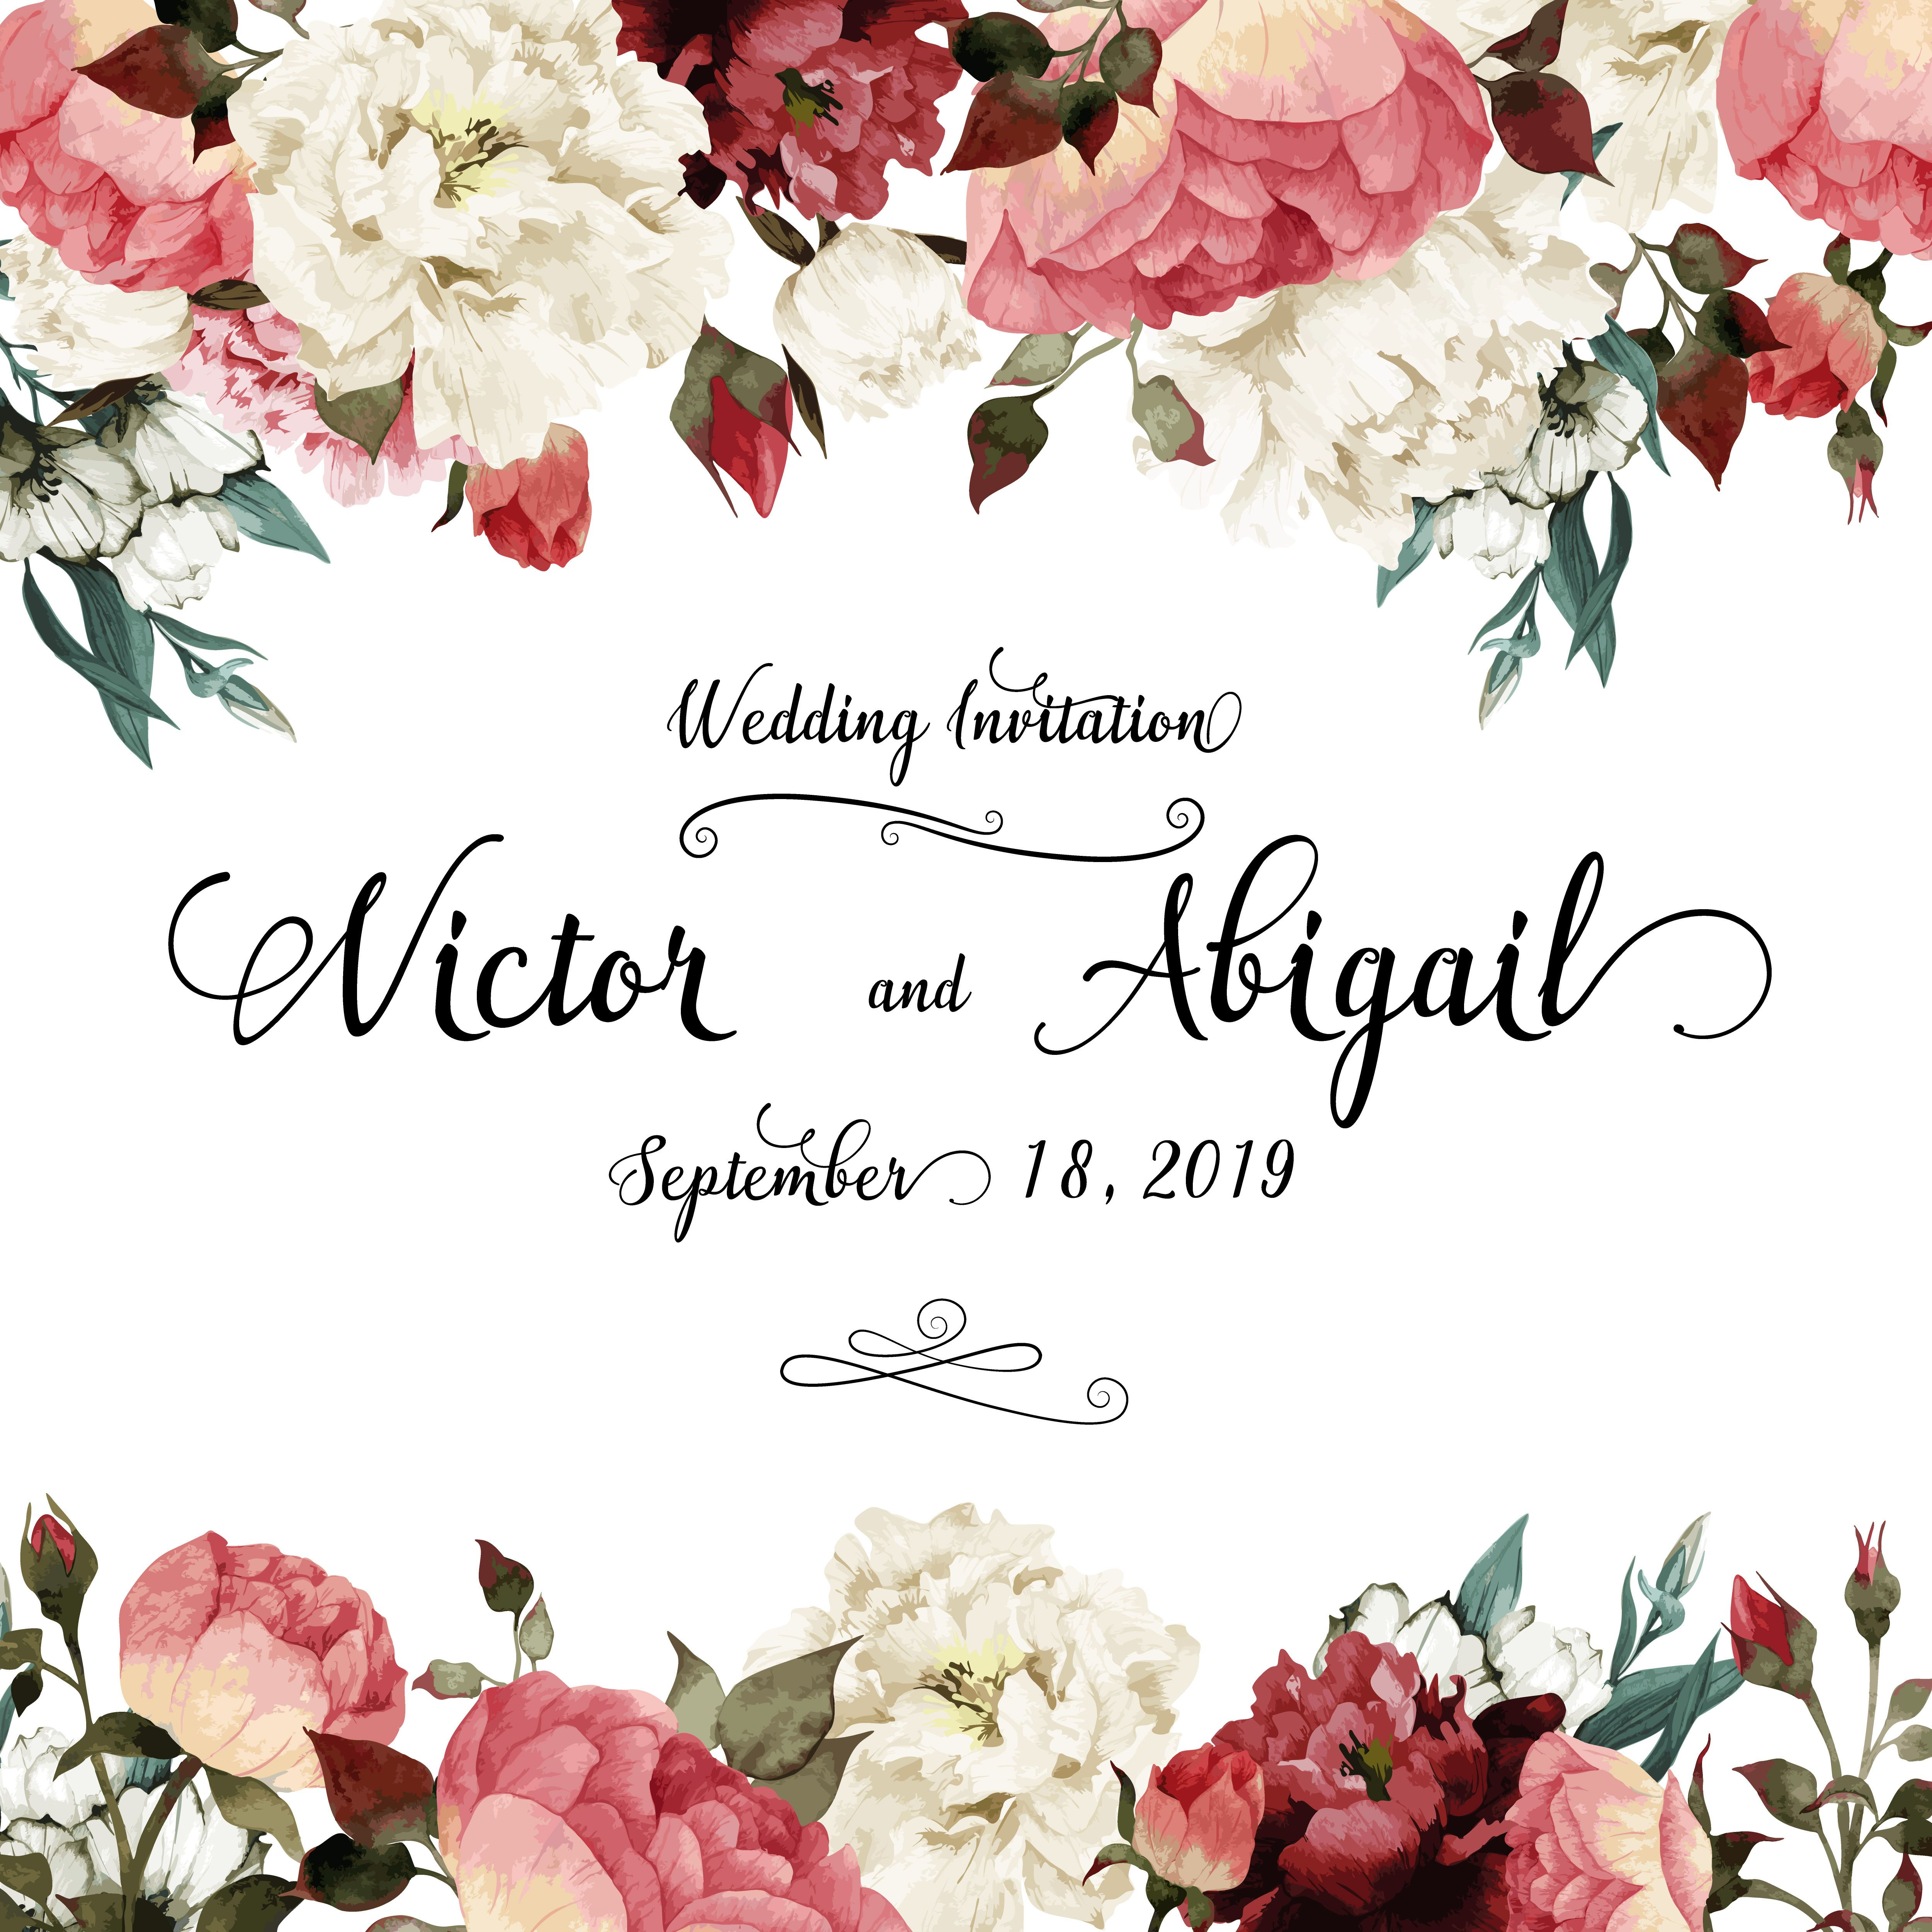 Flower Wedding Invitations 033 - Flower Wedding Invitations